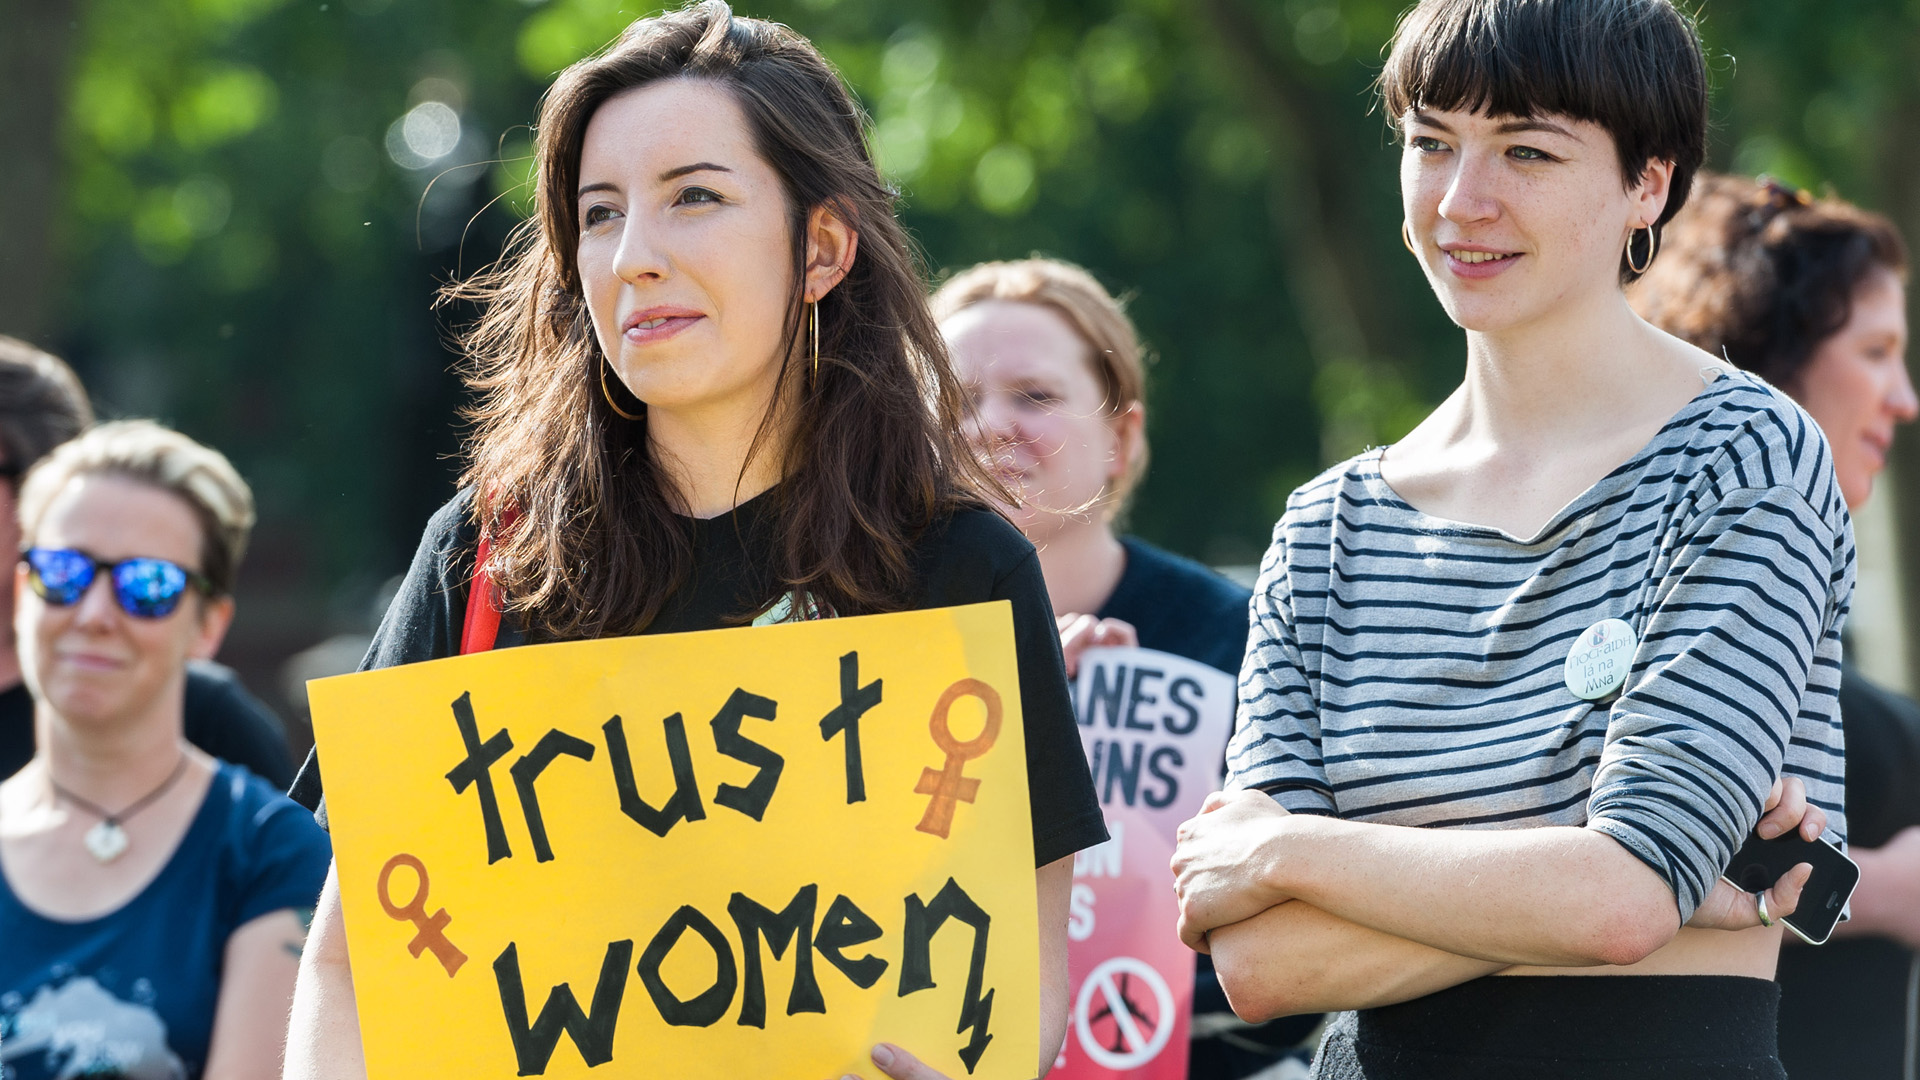 Protest to legalise abortion in Northern Ireland